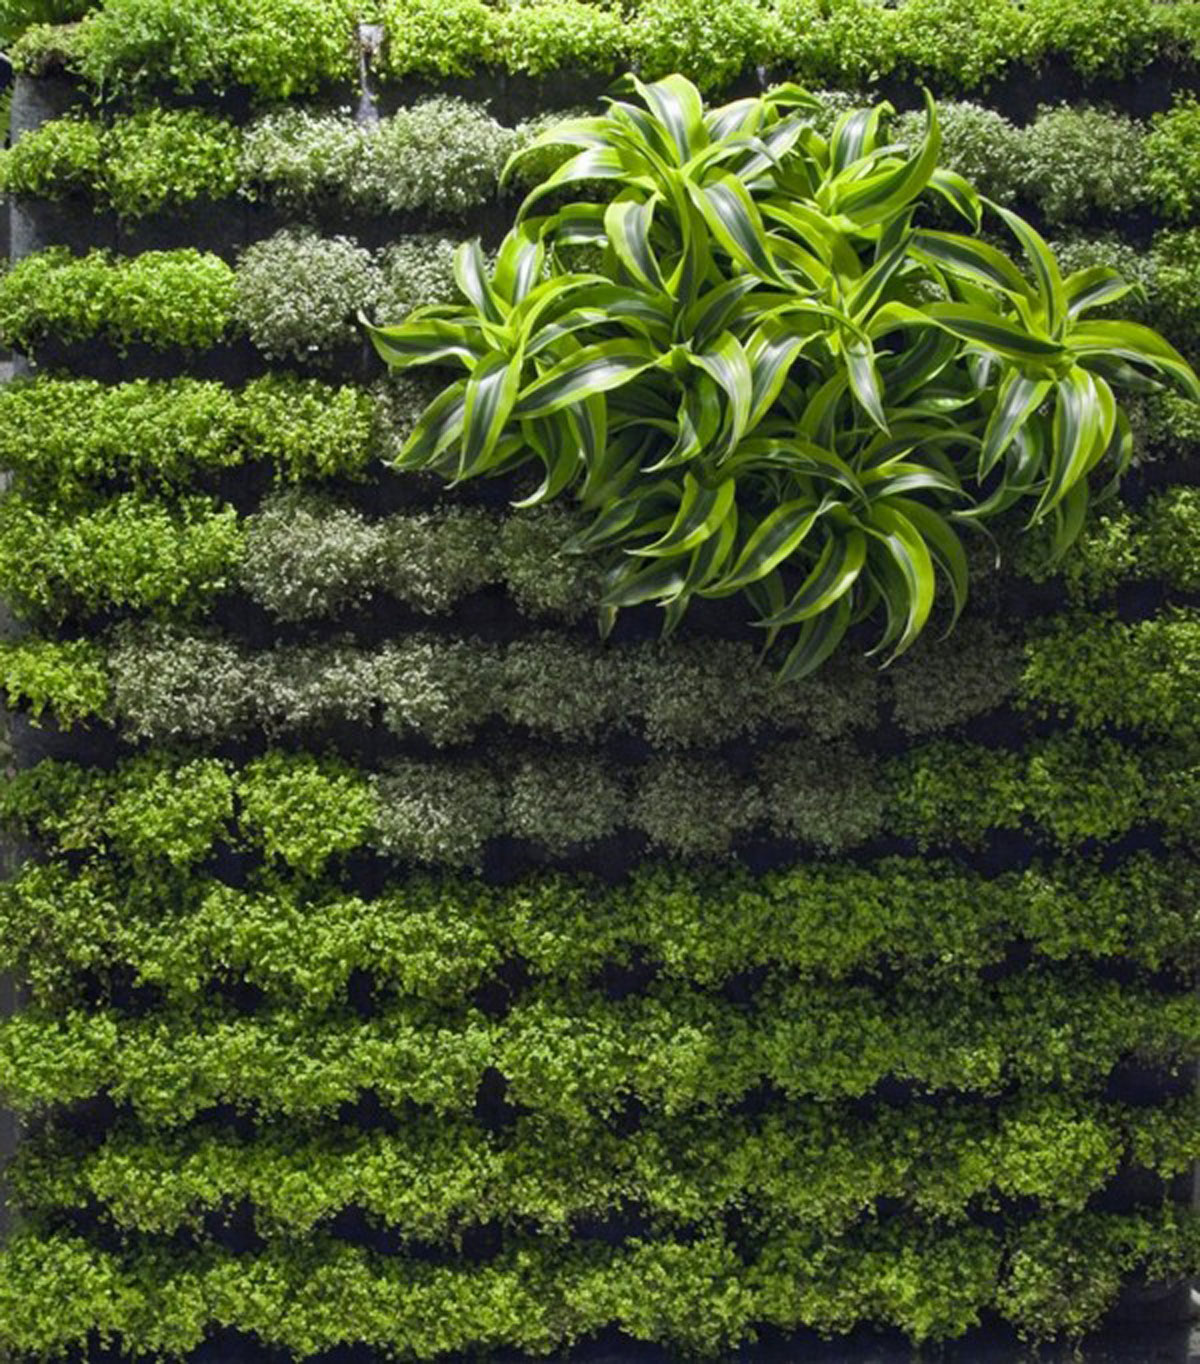 Applicative vertical garden designs for Garden ideas images